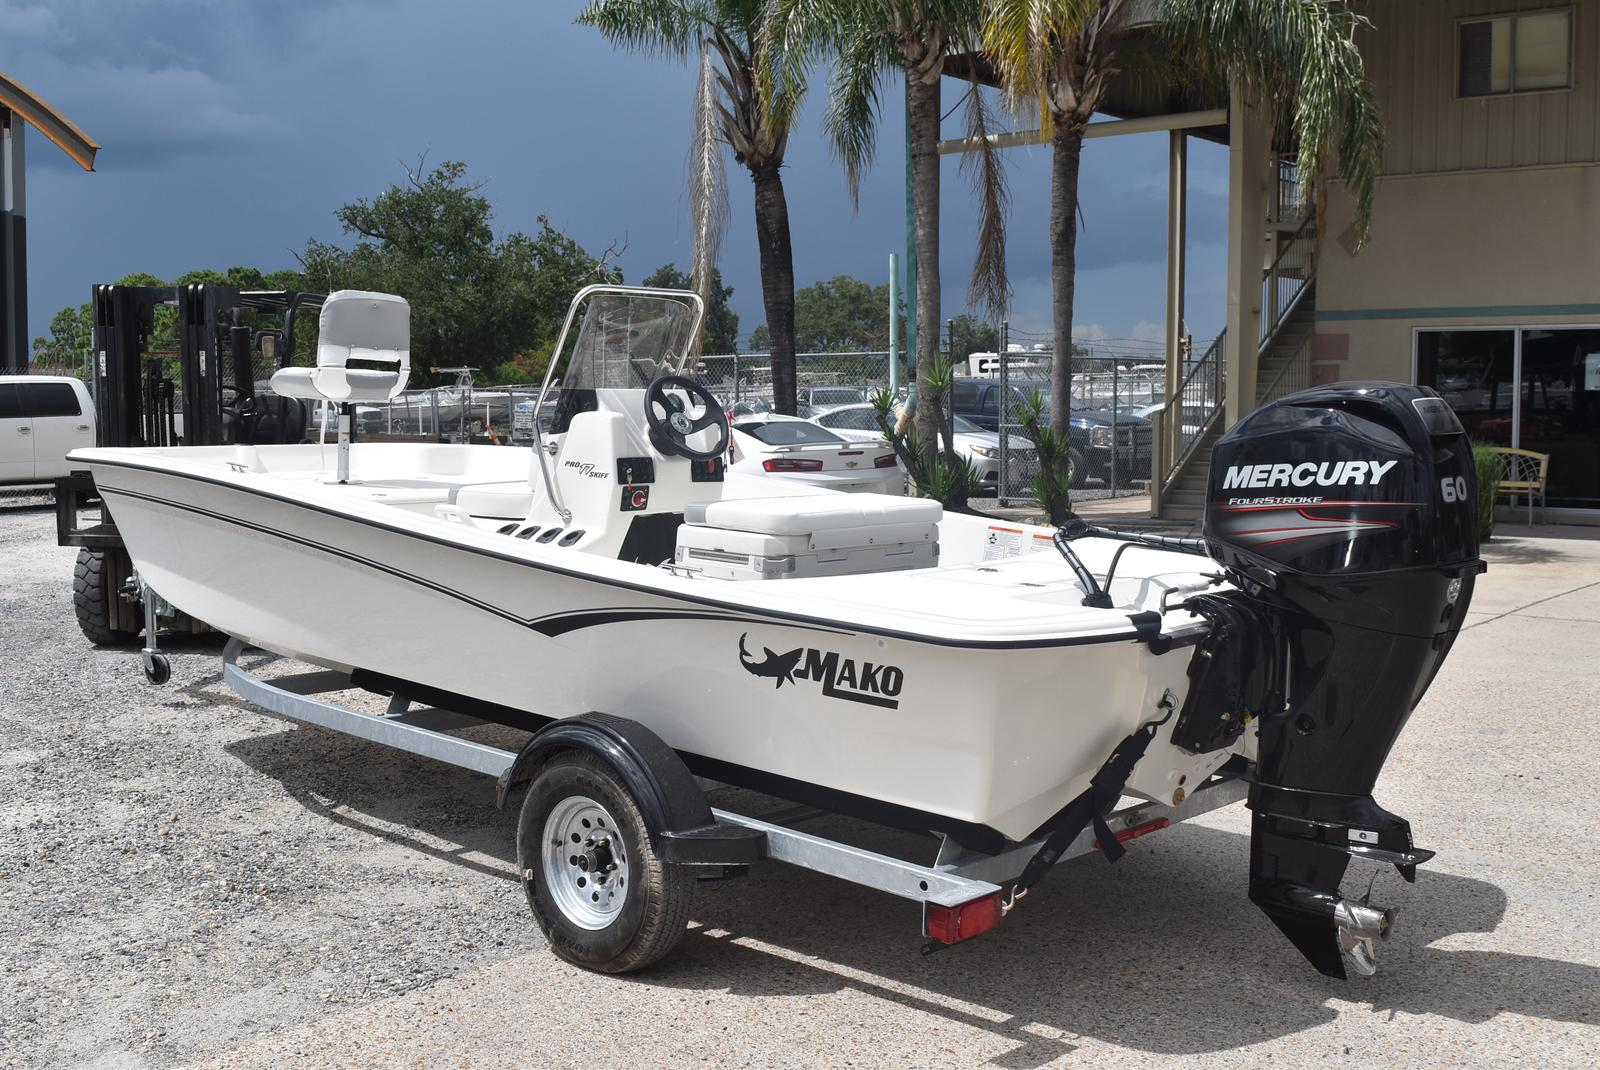 2020 Mako boat for sale, model of the boat is Pro Skiff 17, 75 ELPT & Image # 197 of 702